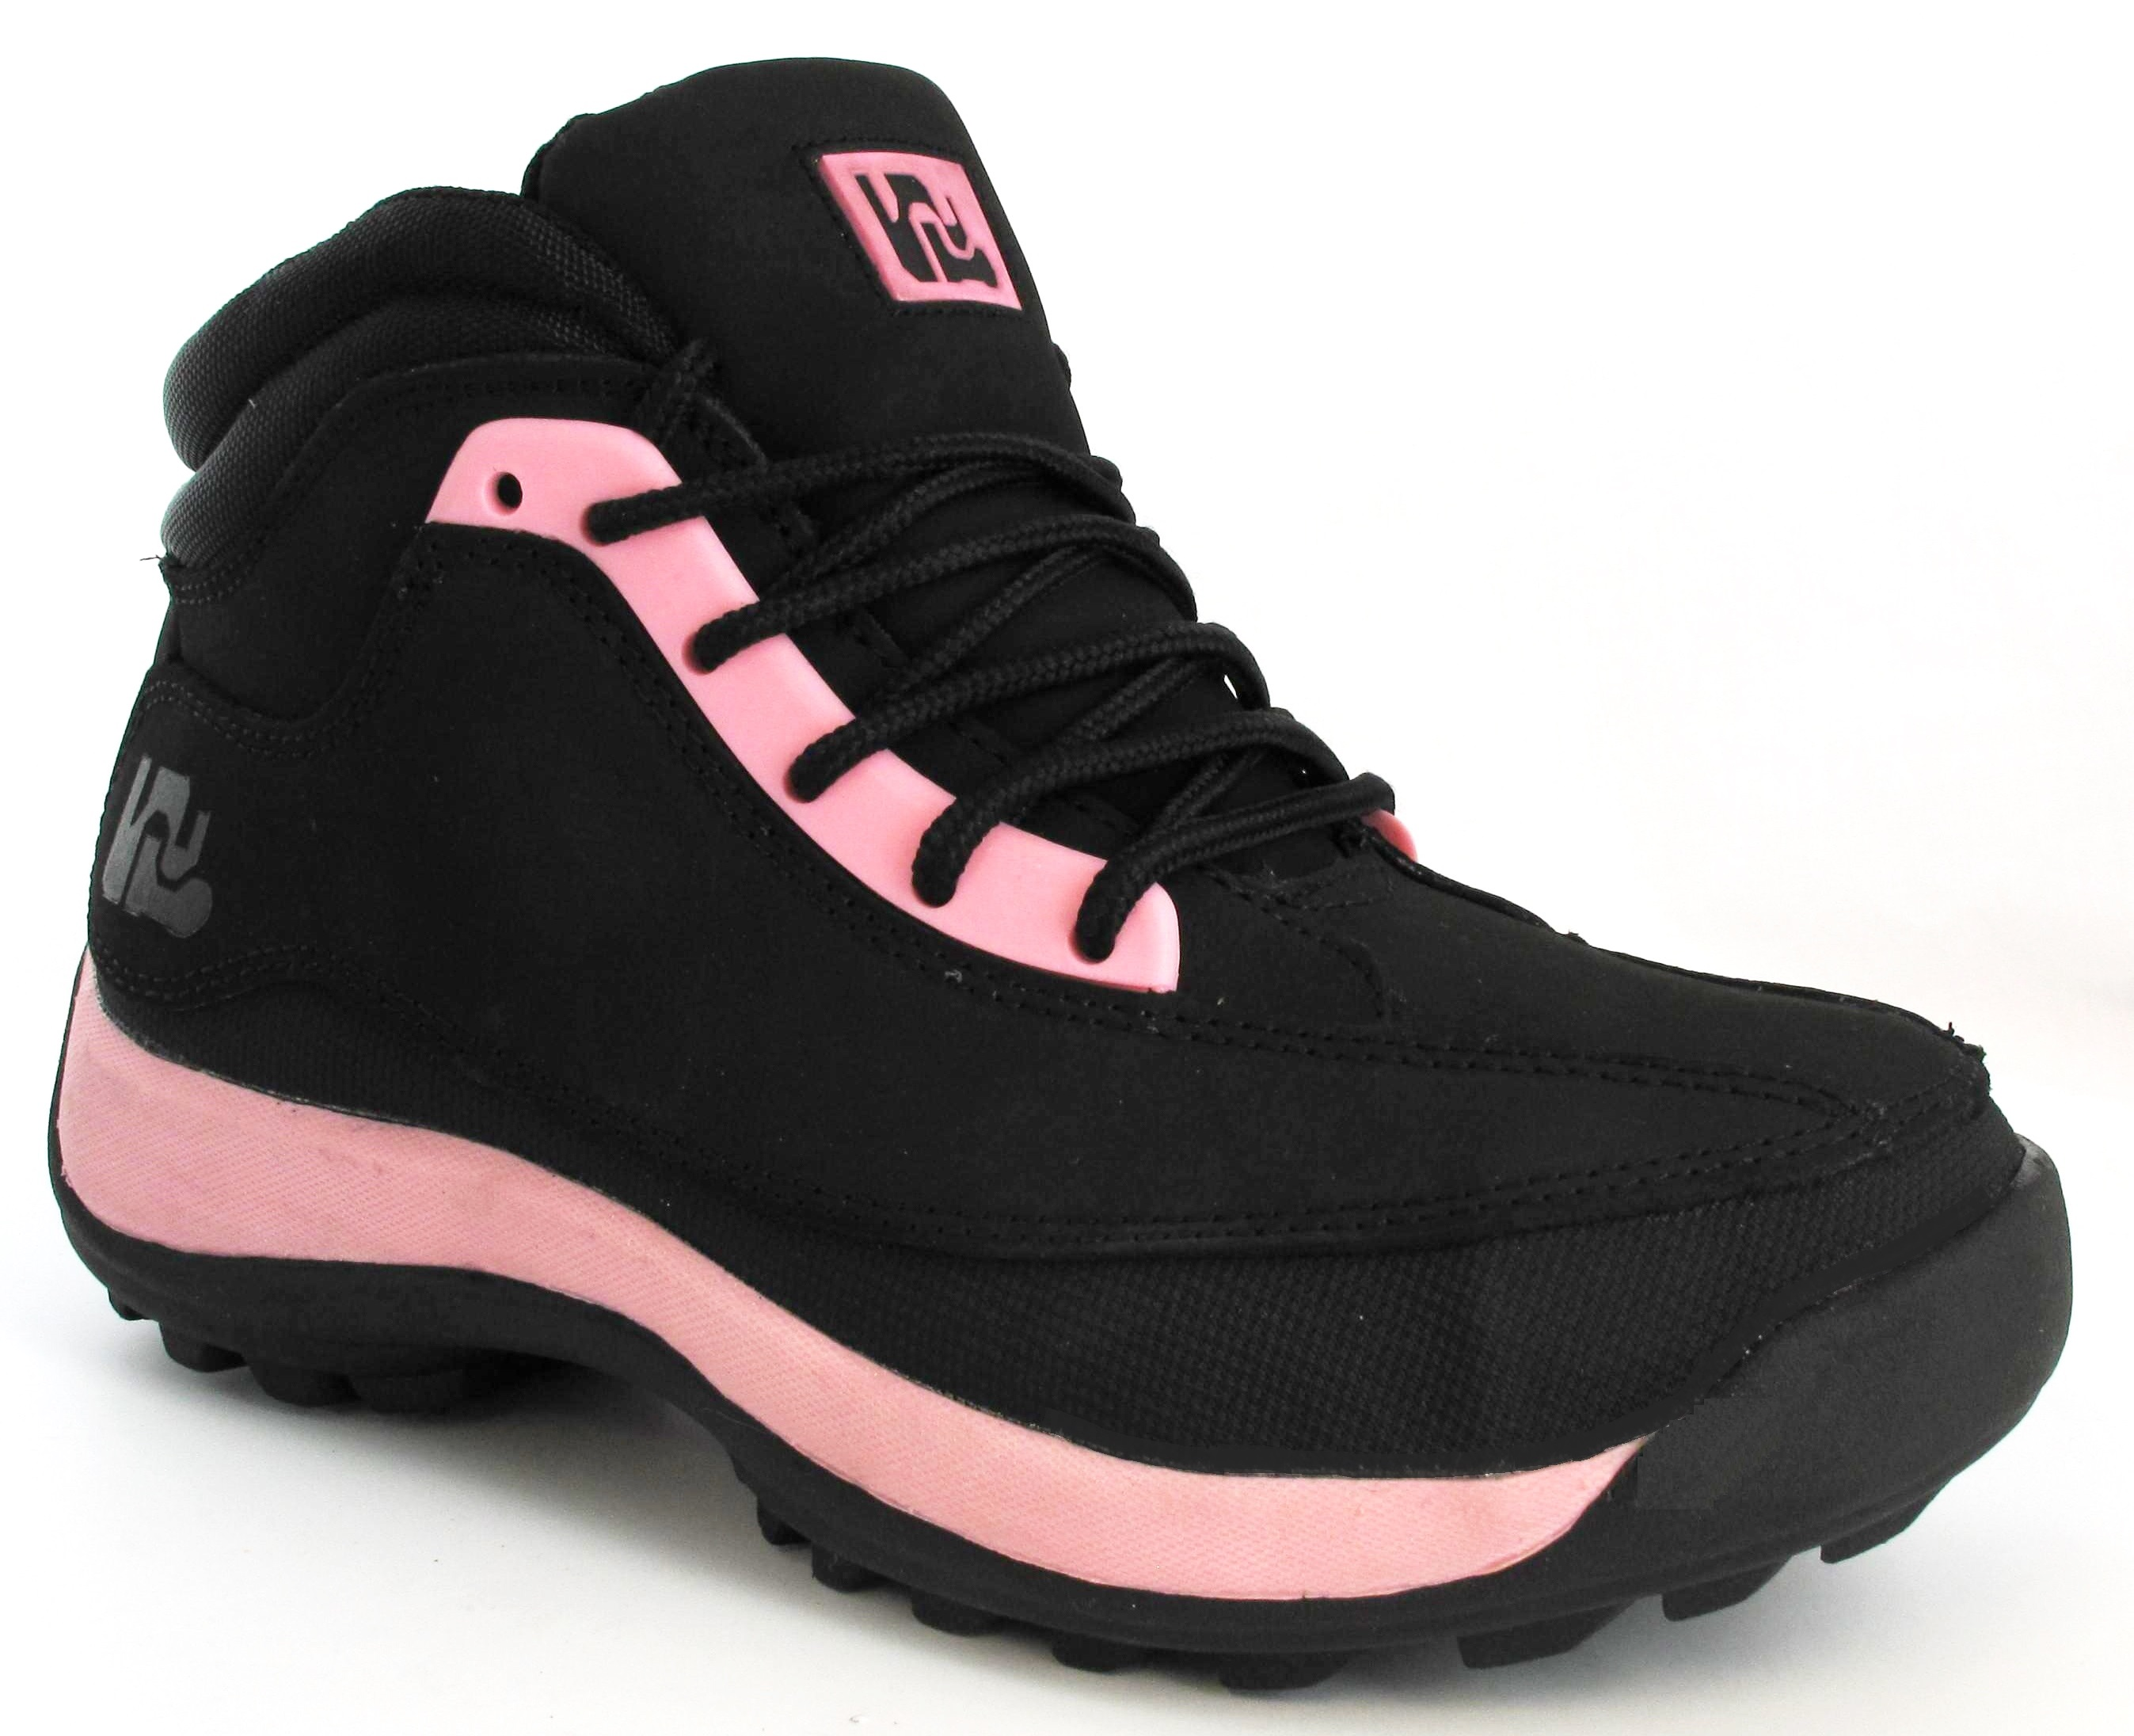 safety black pink steel toe cap leather ankle hiking